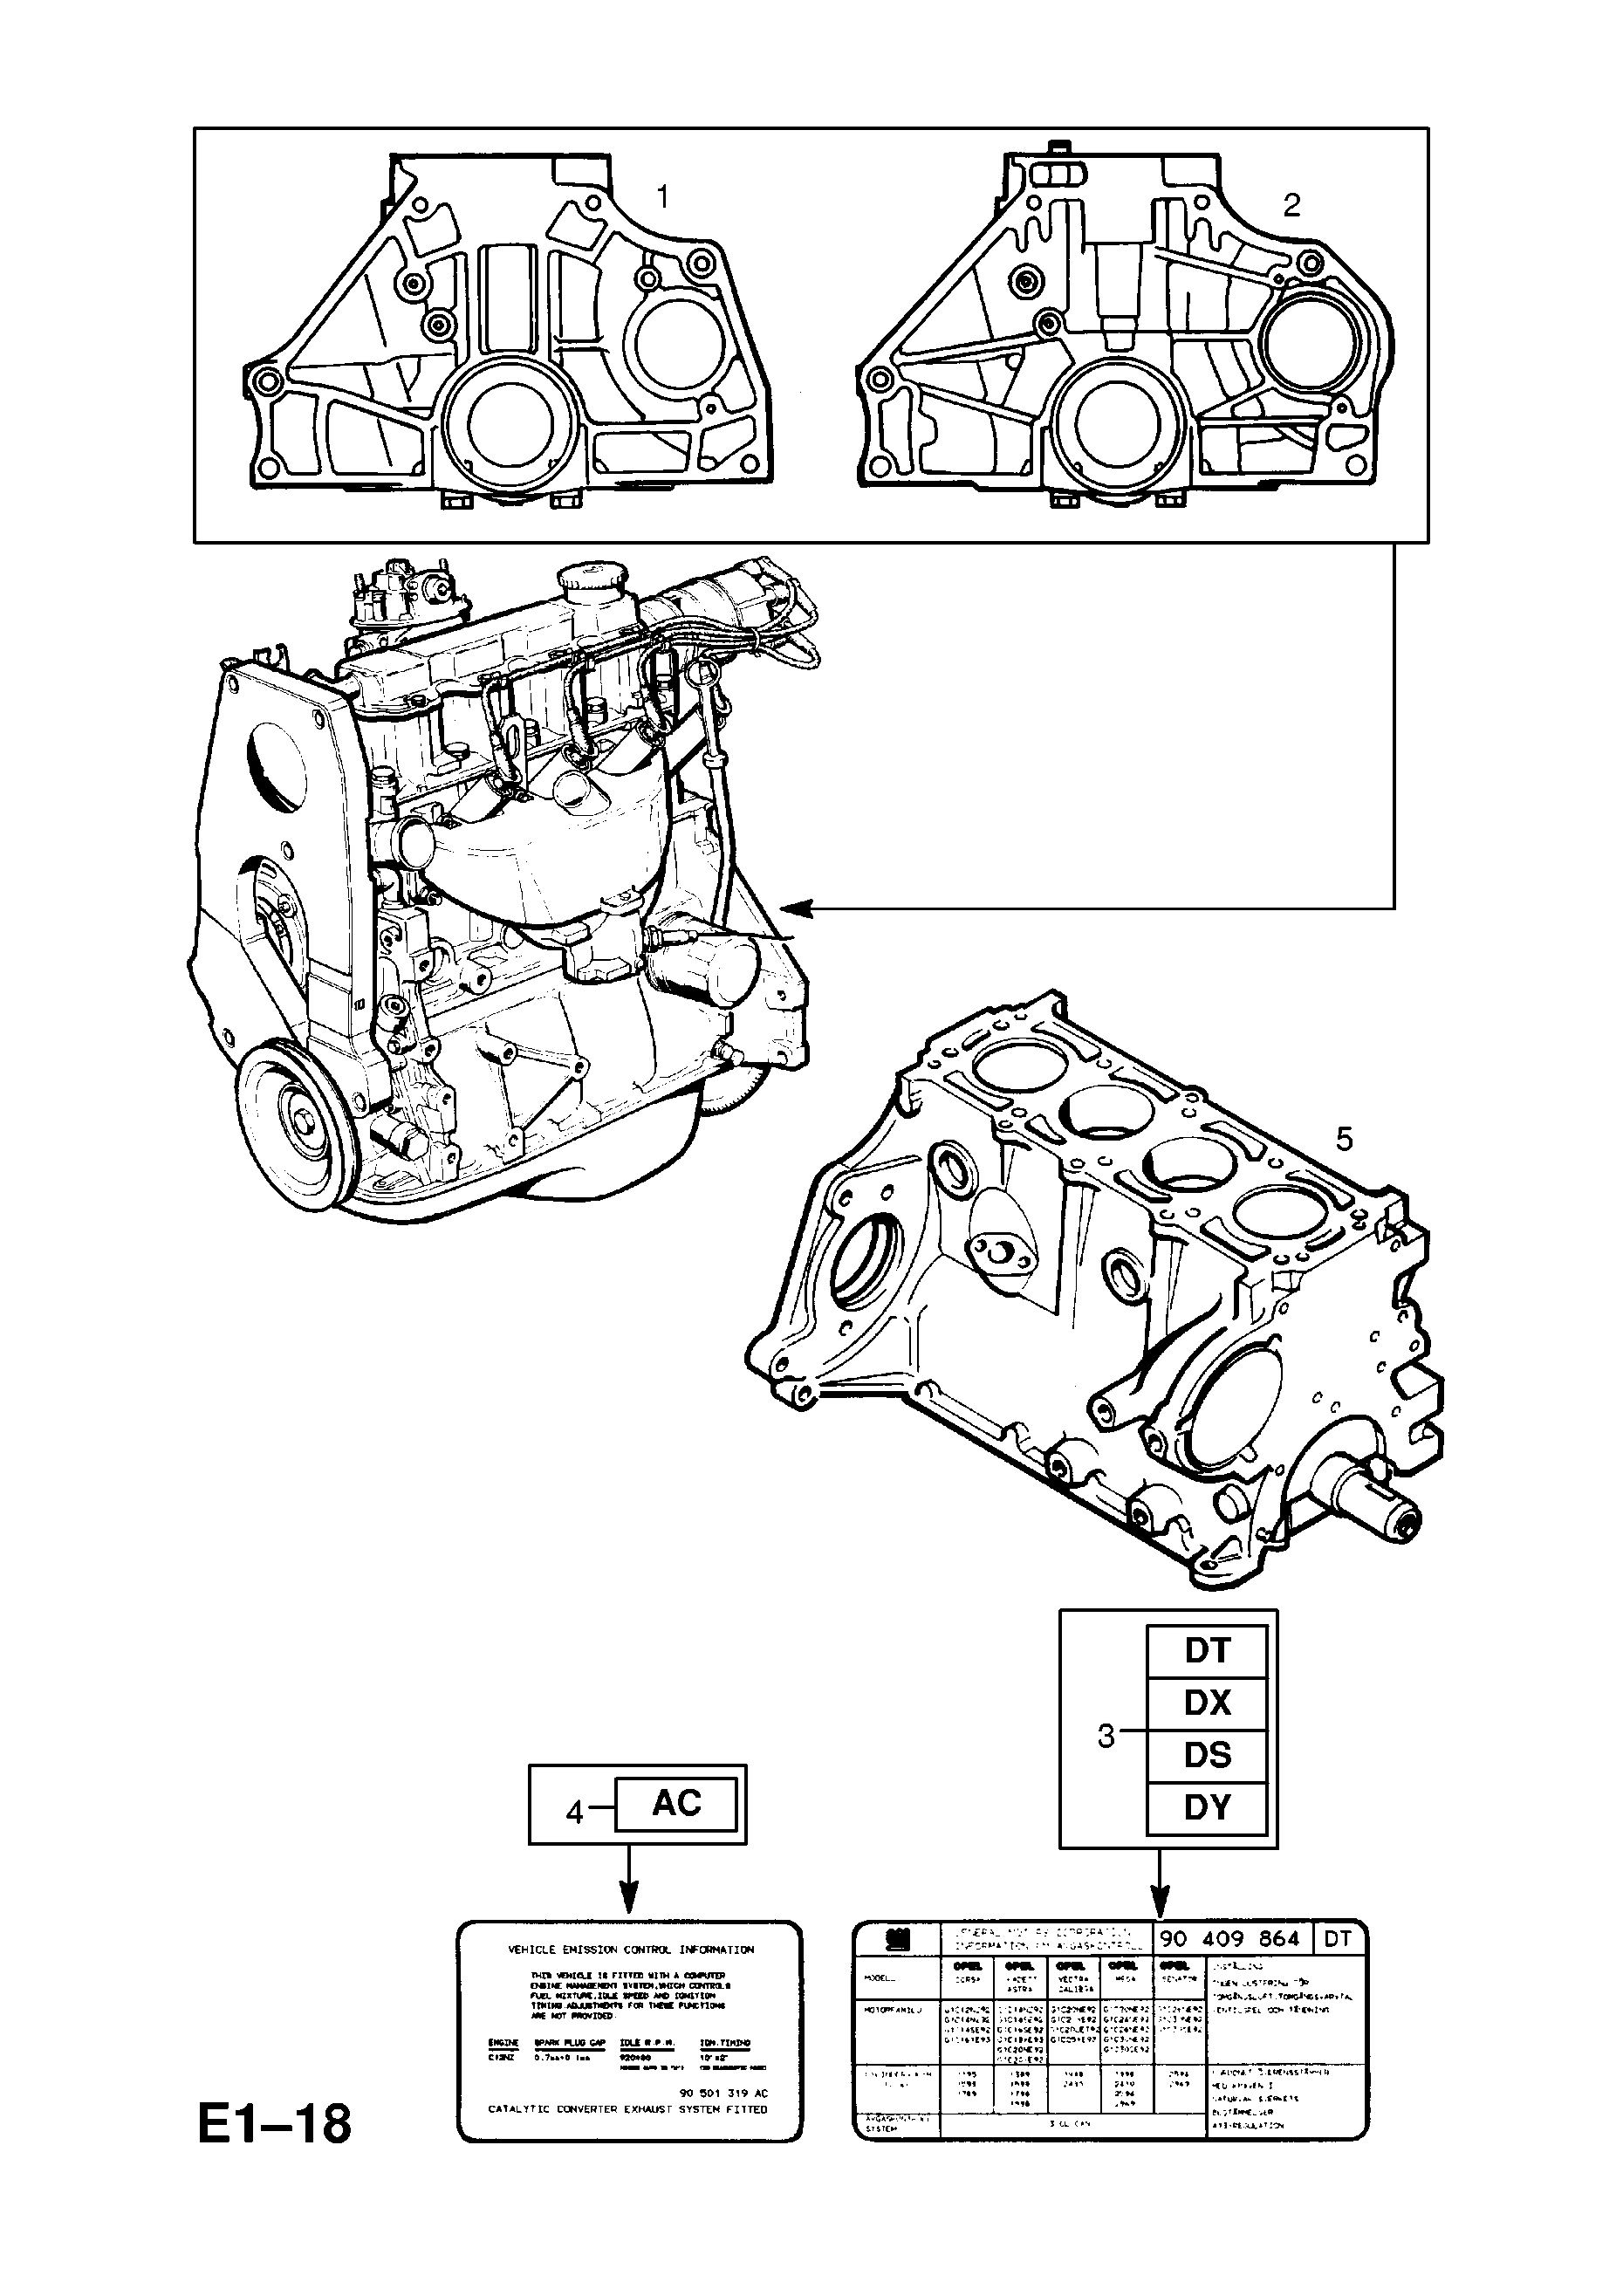 ENGINE ASSEMBLY [X12SZ[L71] WITH MANUAL TRANSMISSION] OPEL